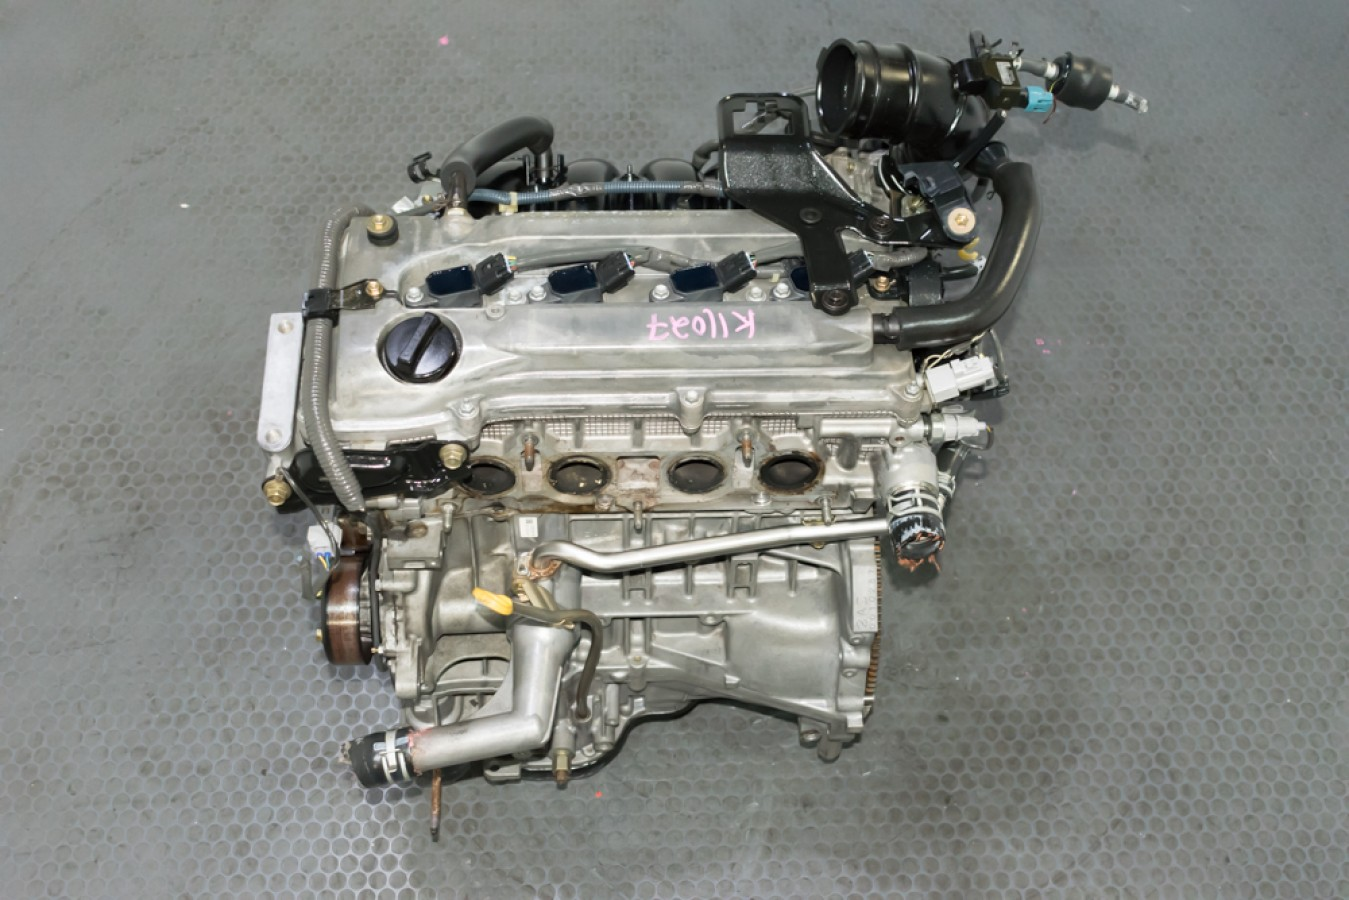 This Used Low Mileage Engine Fits Scion Tc 2005